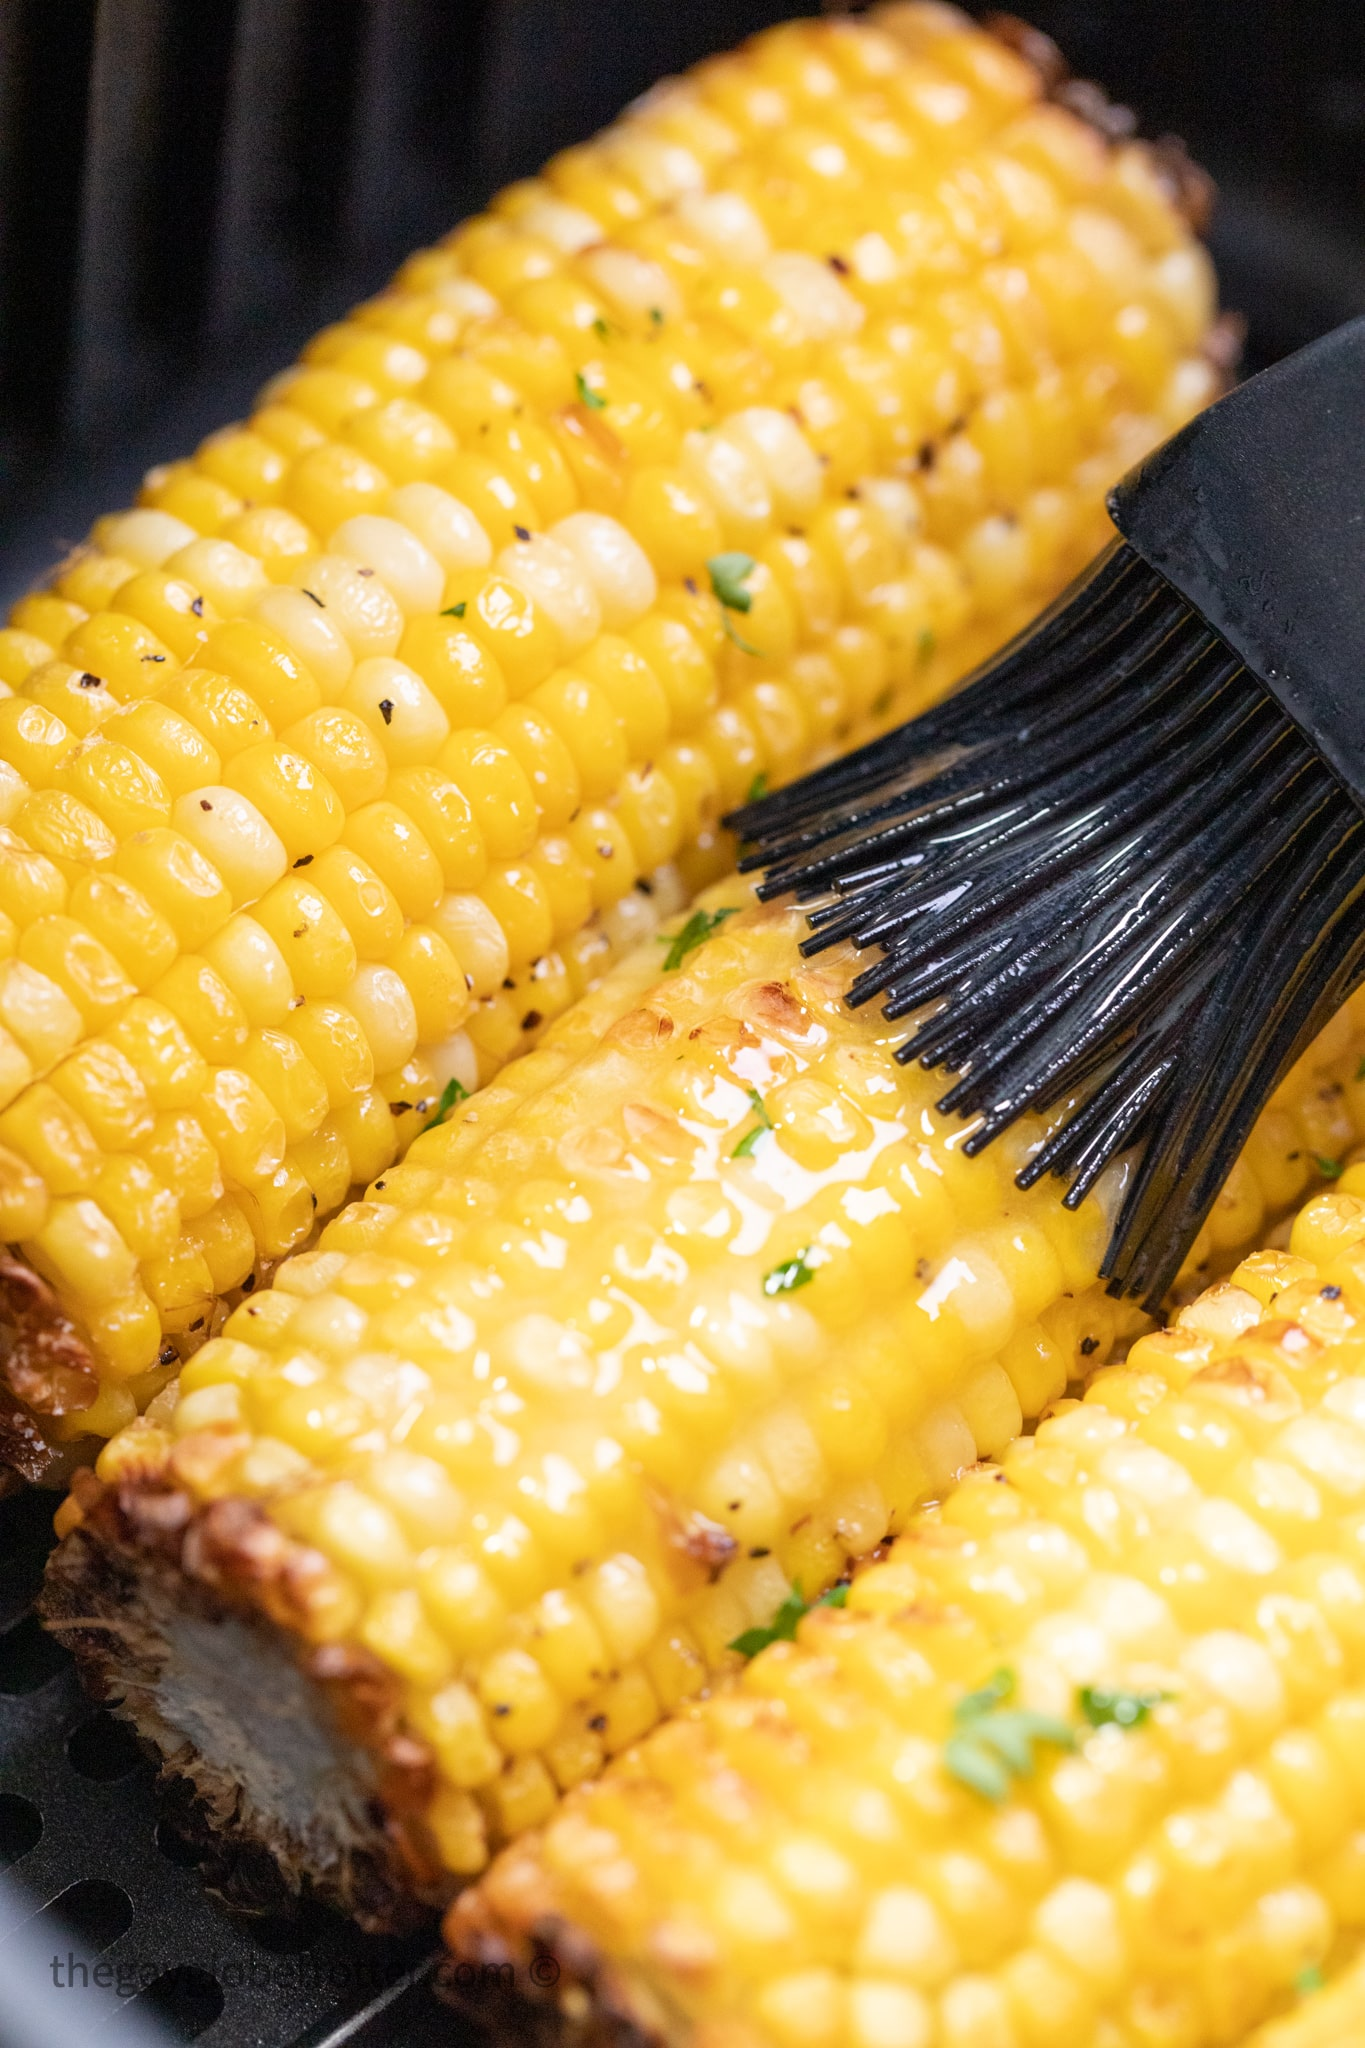 Butter bing brushed on corn in the air fryer.